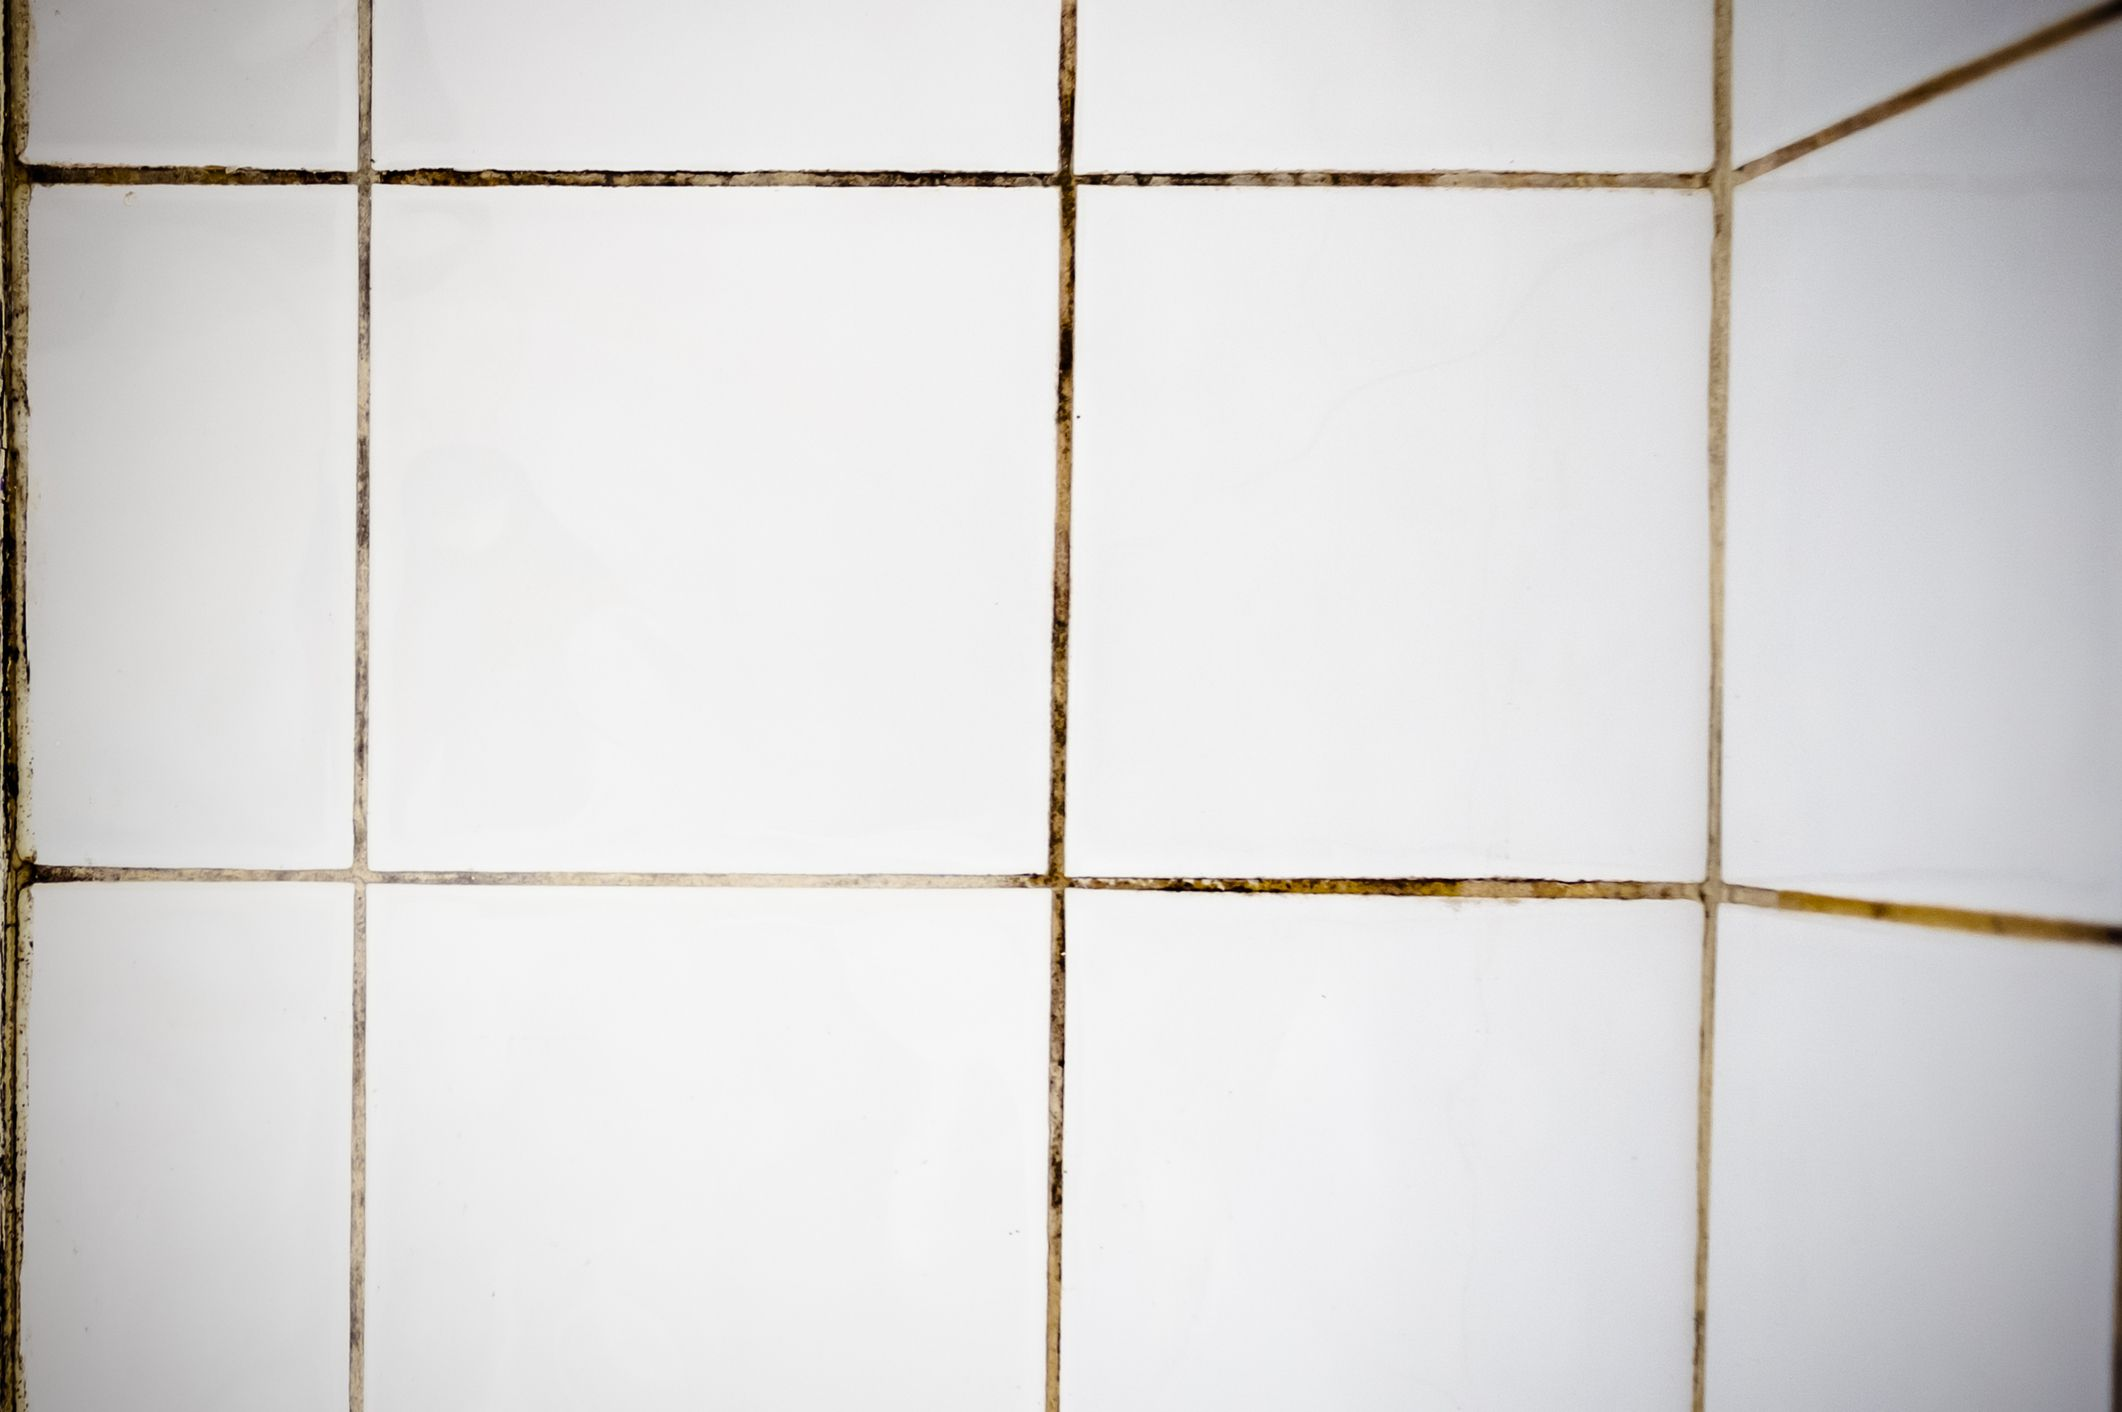 Mold on grout between white square tiles.